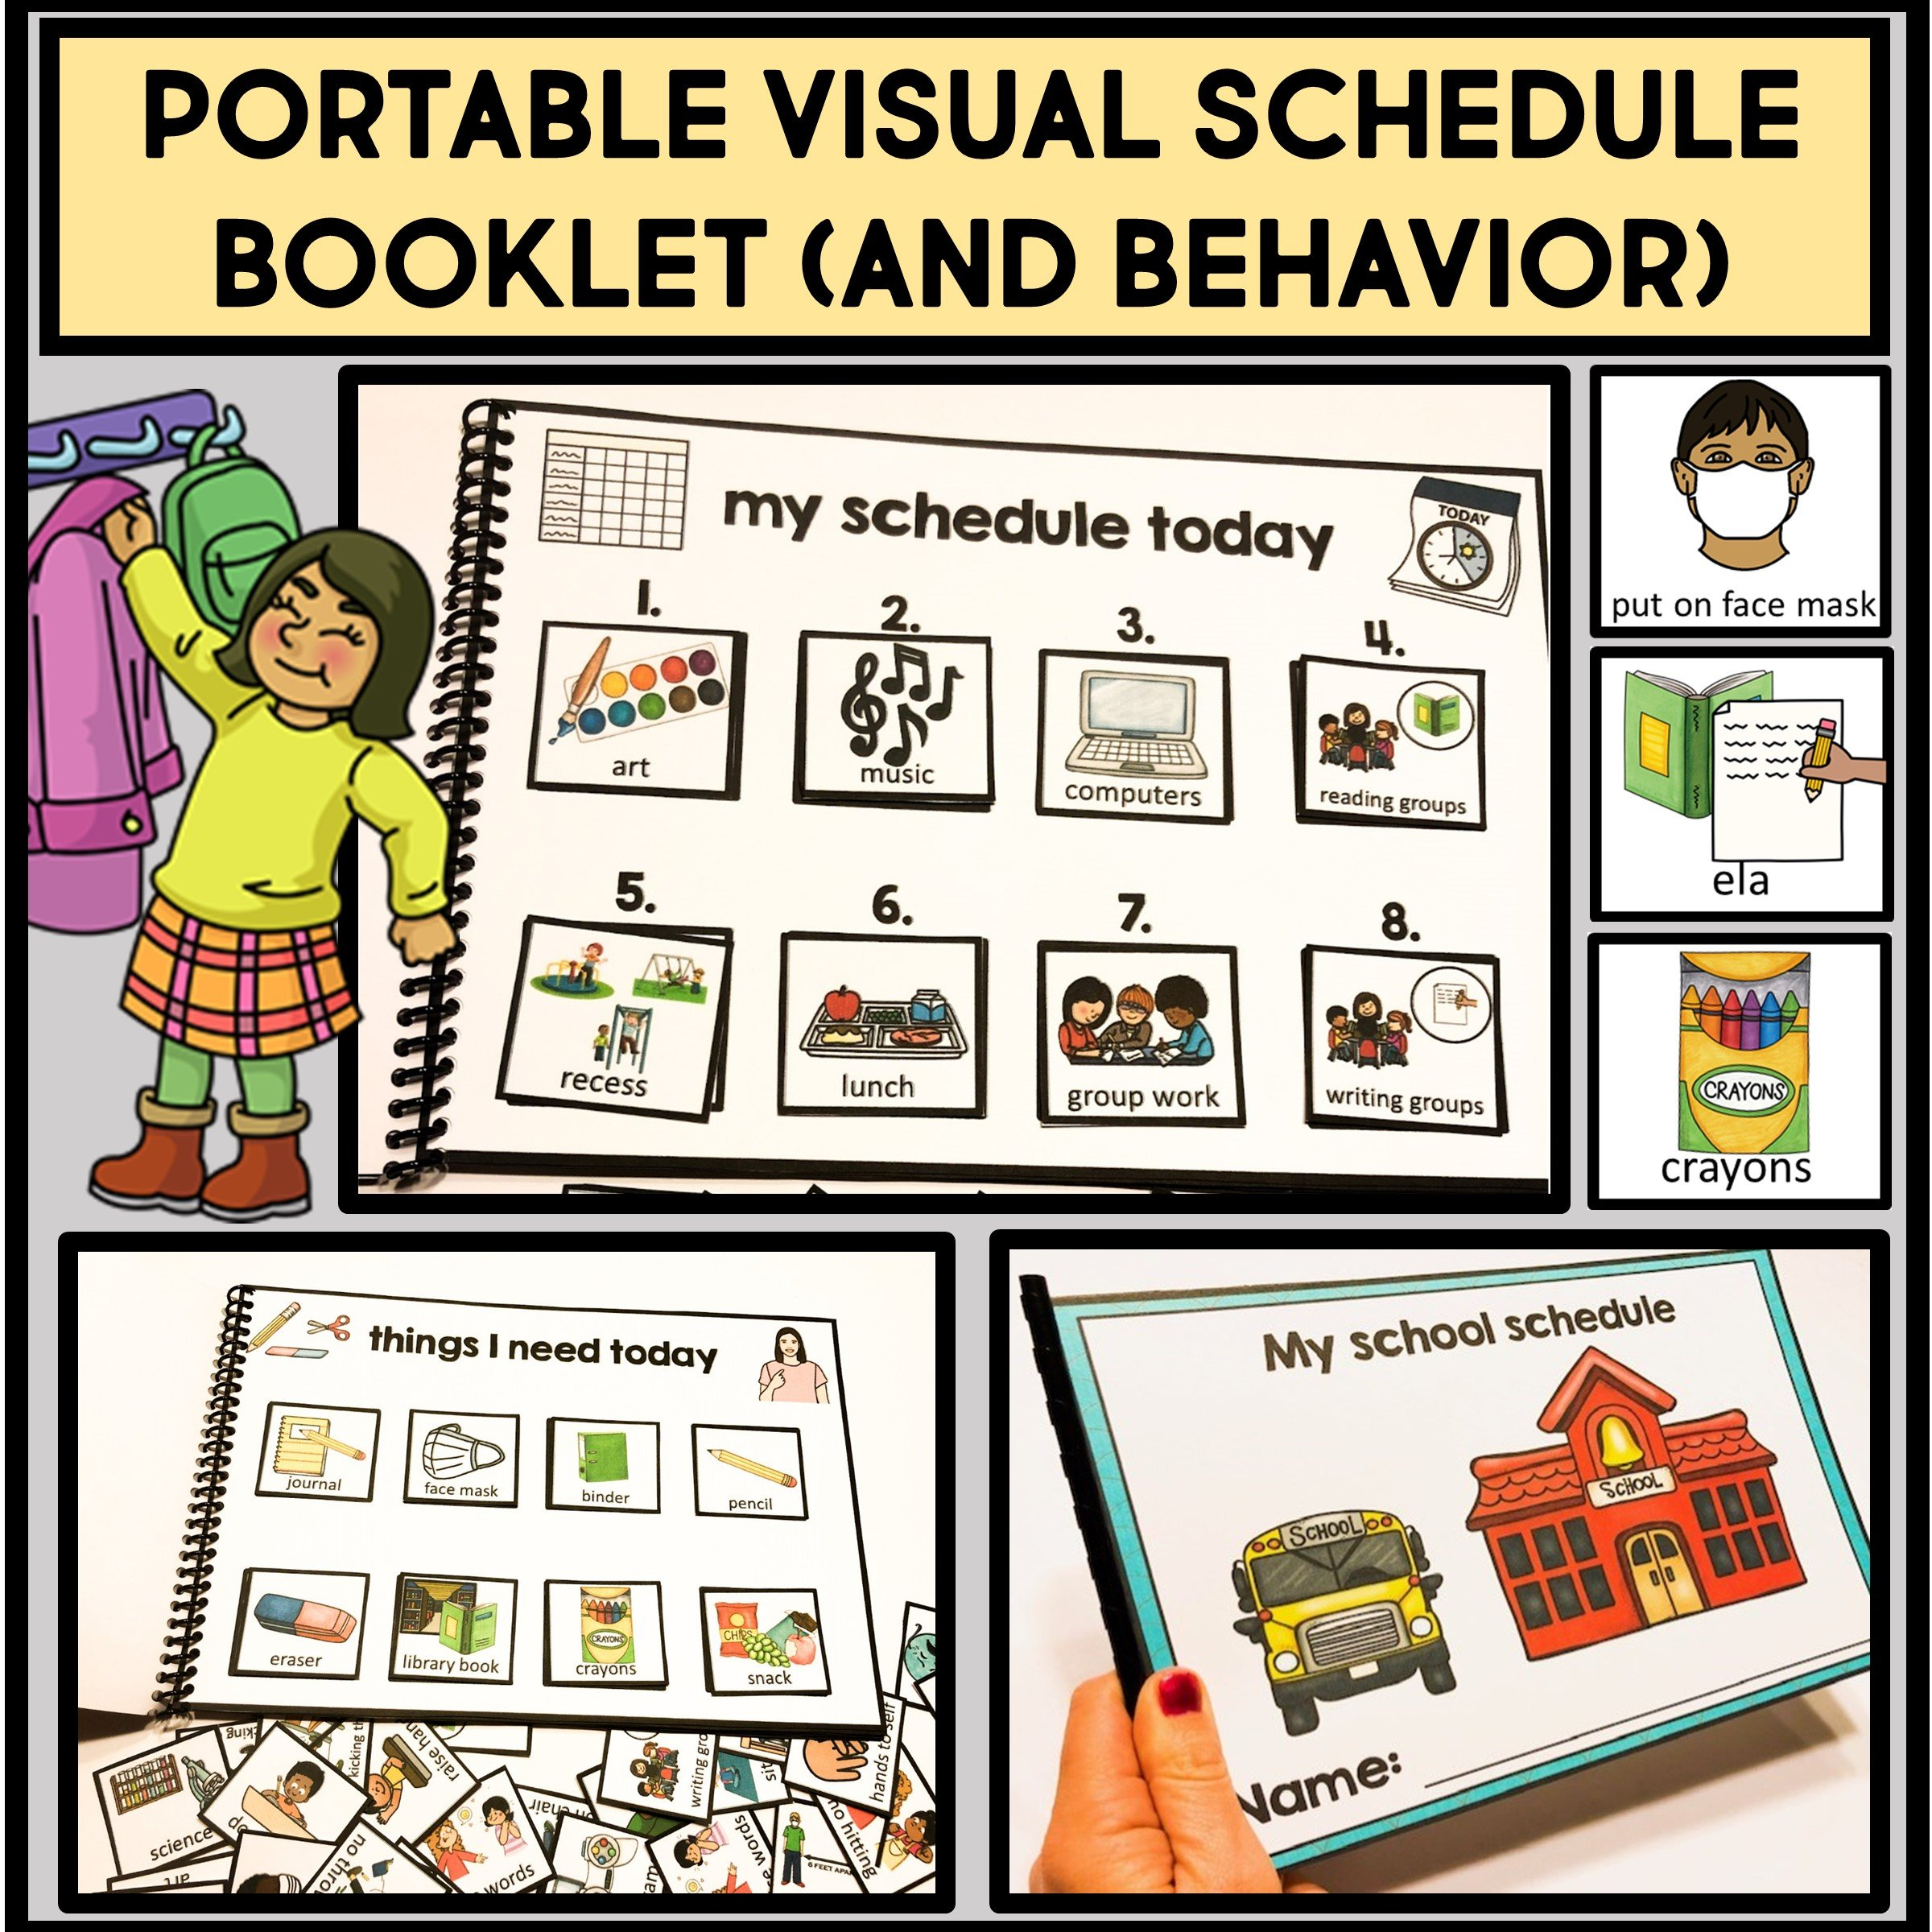 Portable Printable Schedule Booklet for Students